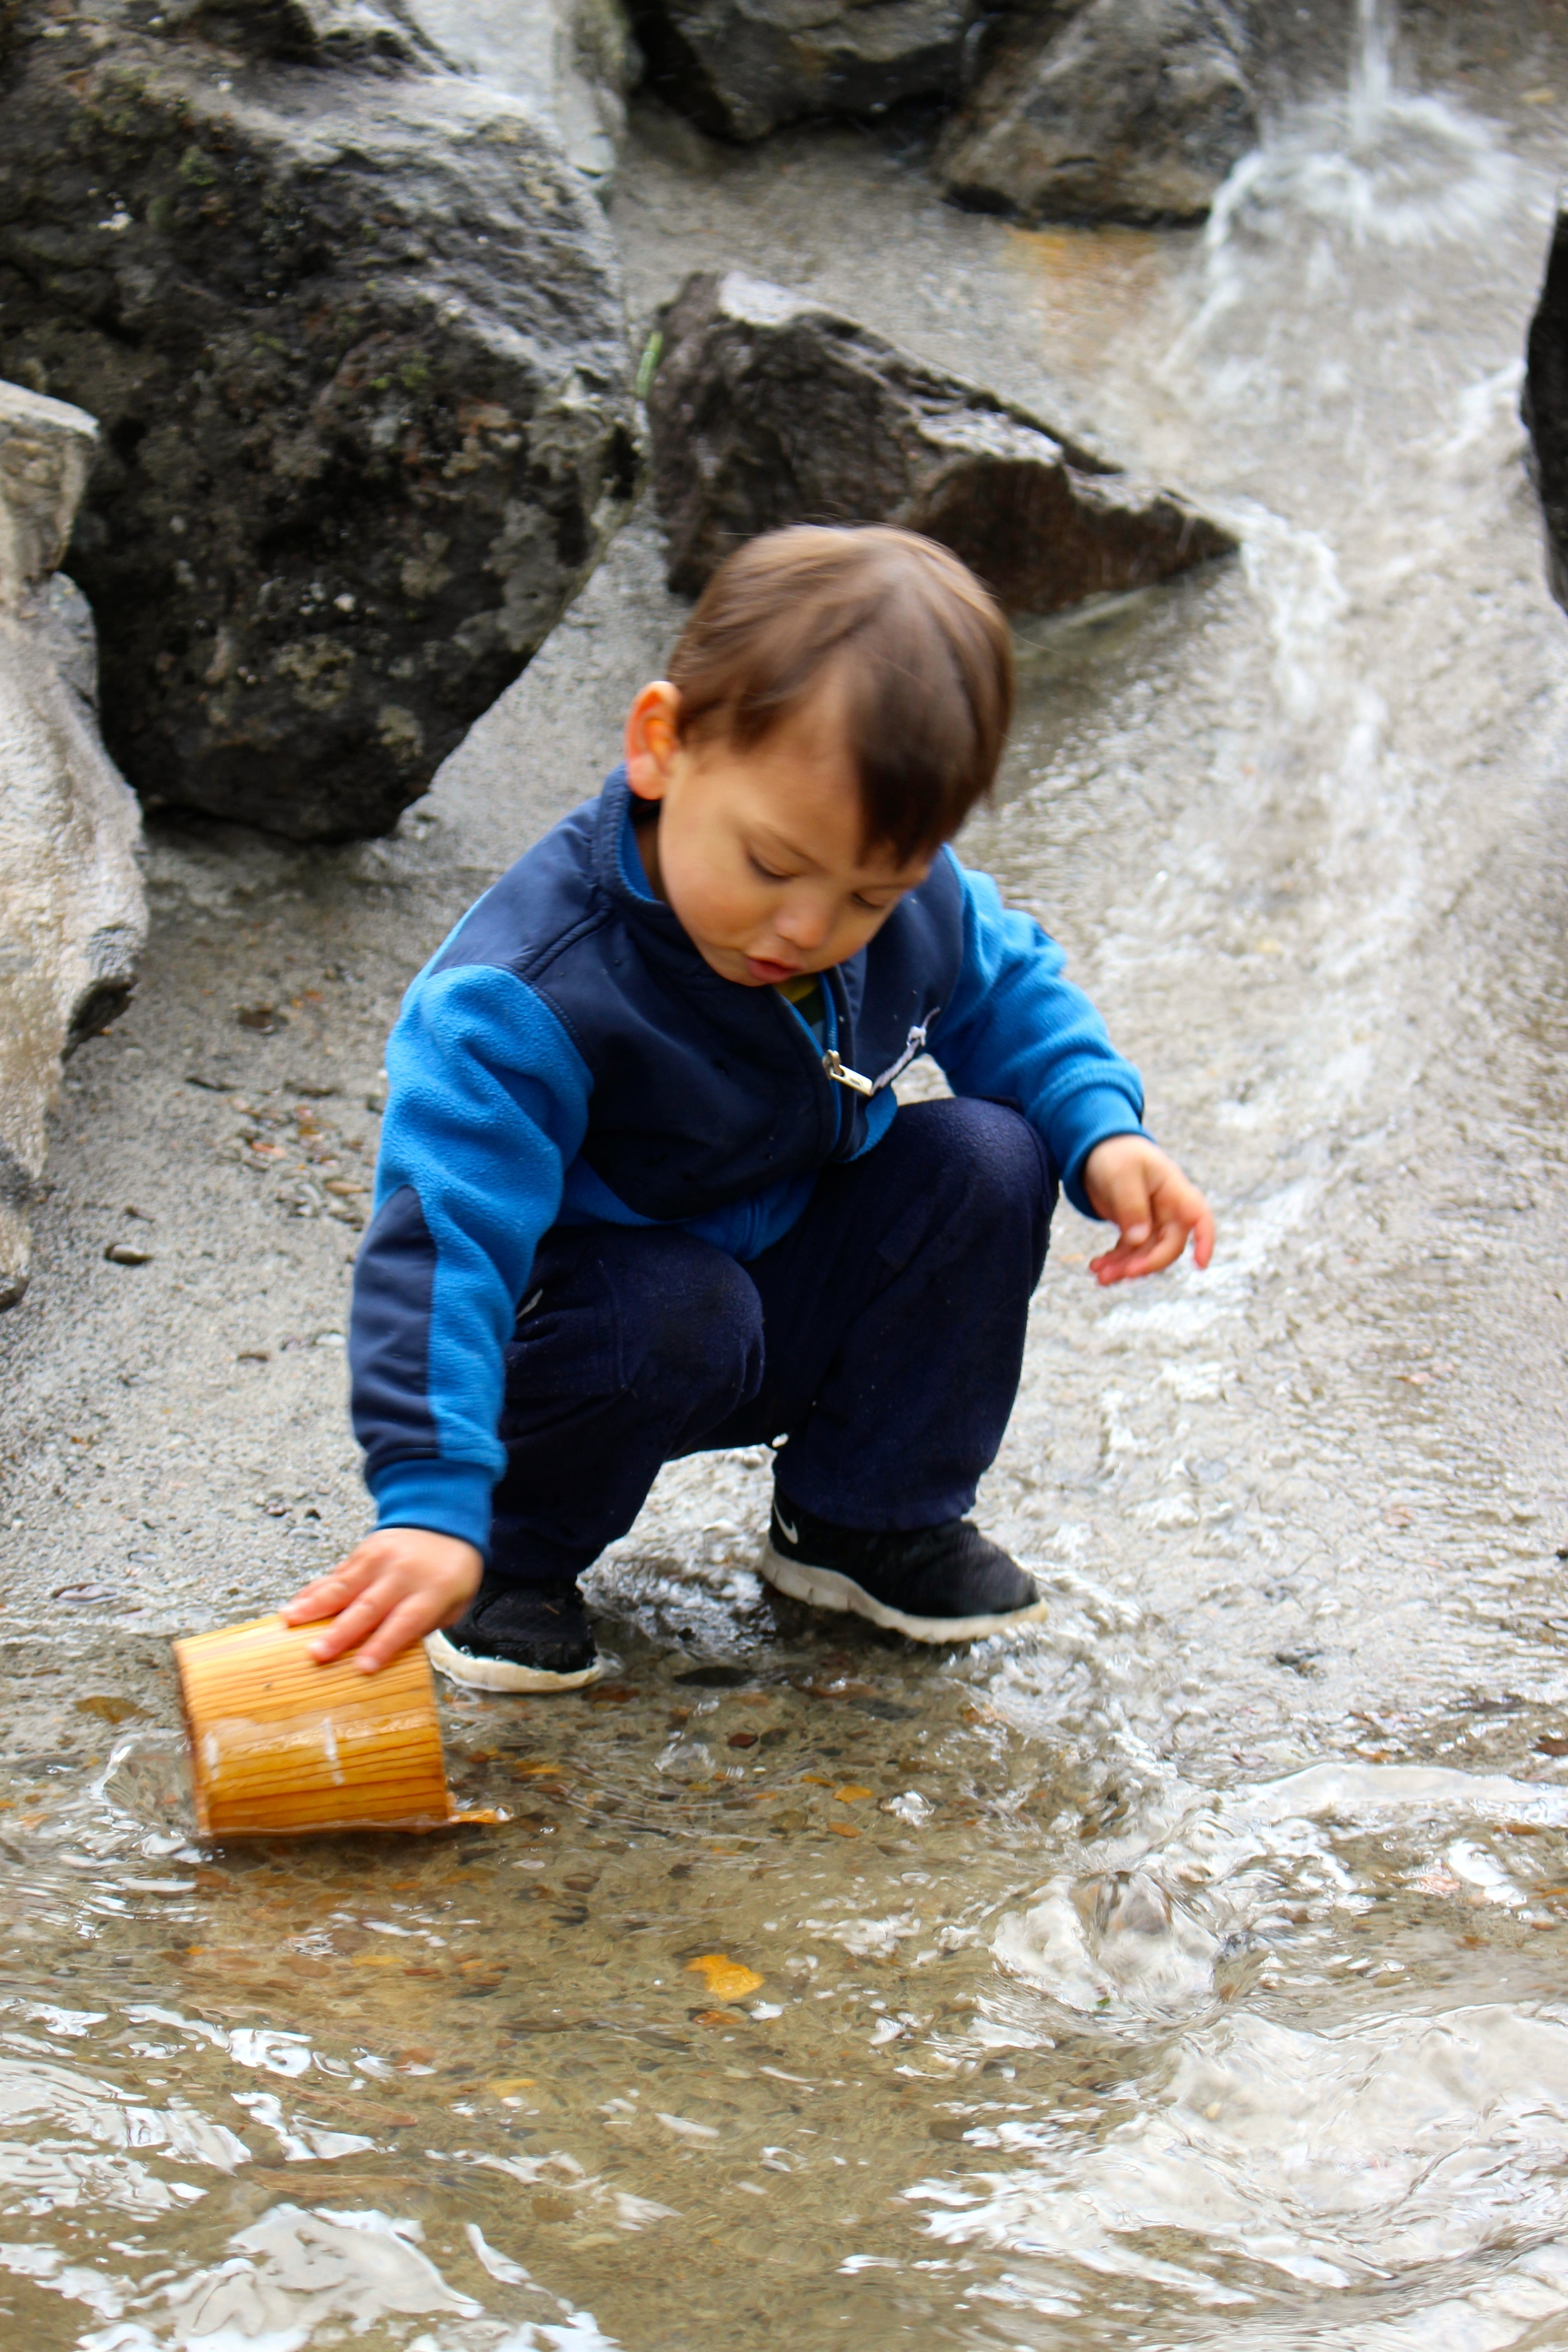 Playing in the creek with PCM's child-sized buckets